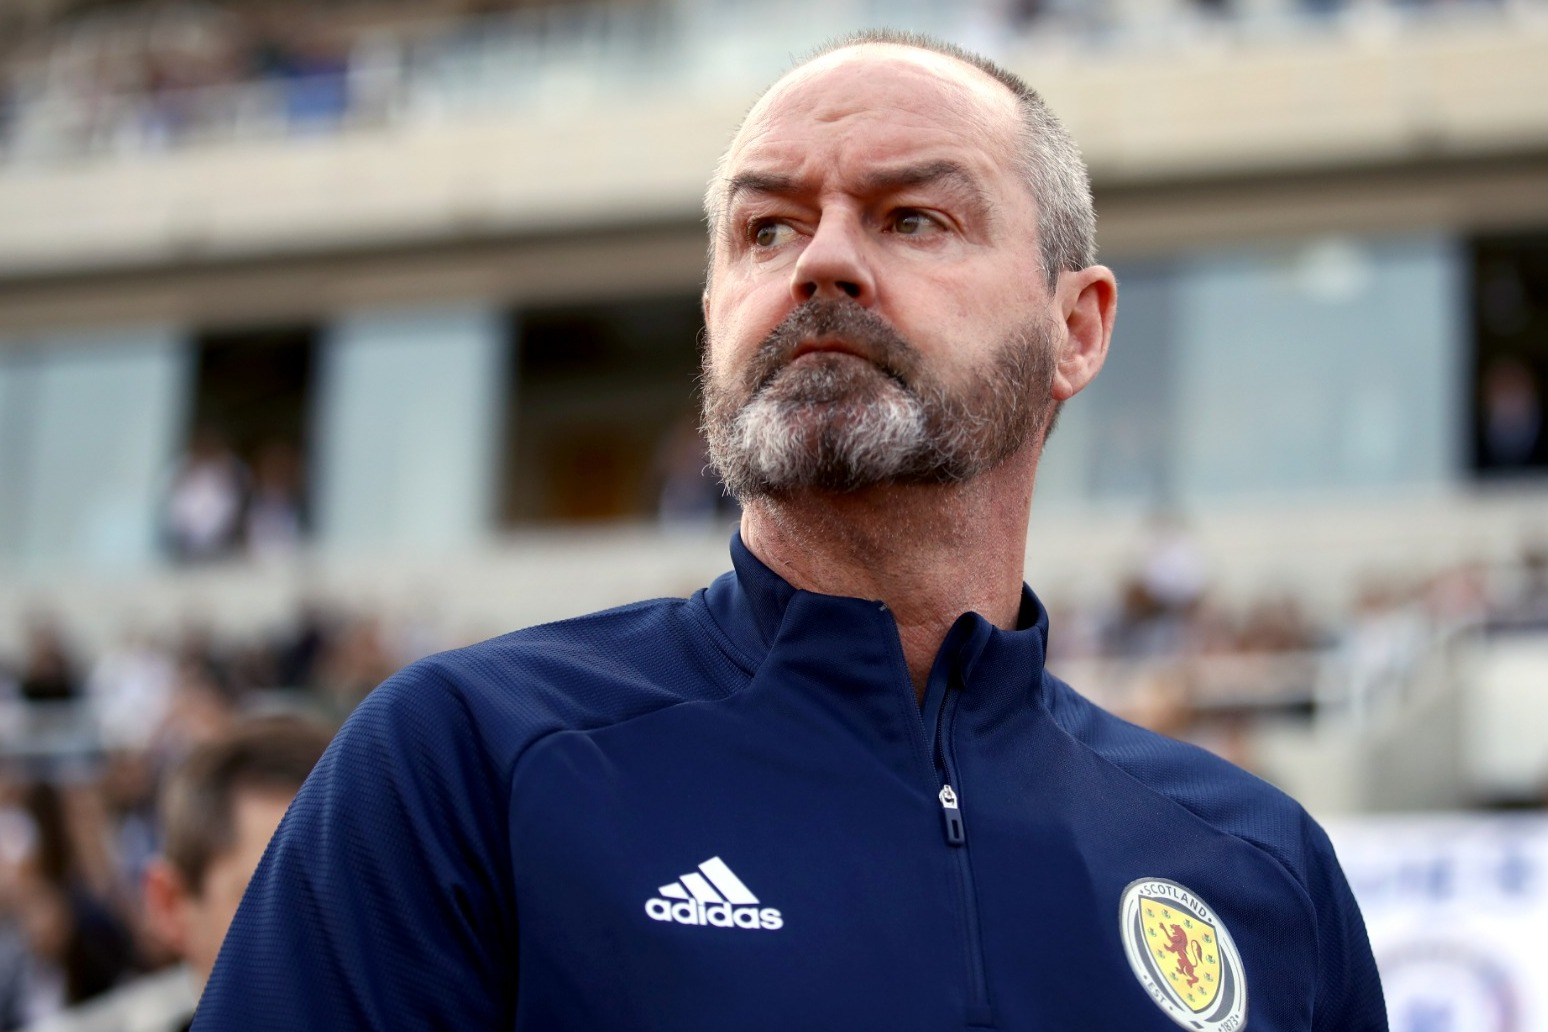 Scotland boss Steve Clarke has opted to put his faith in youth for the European Championships